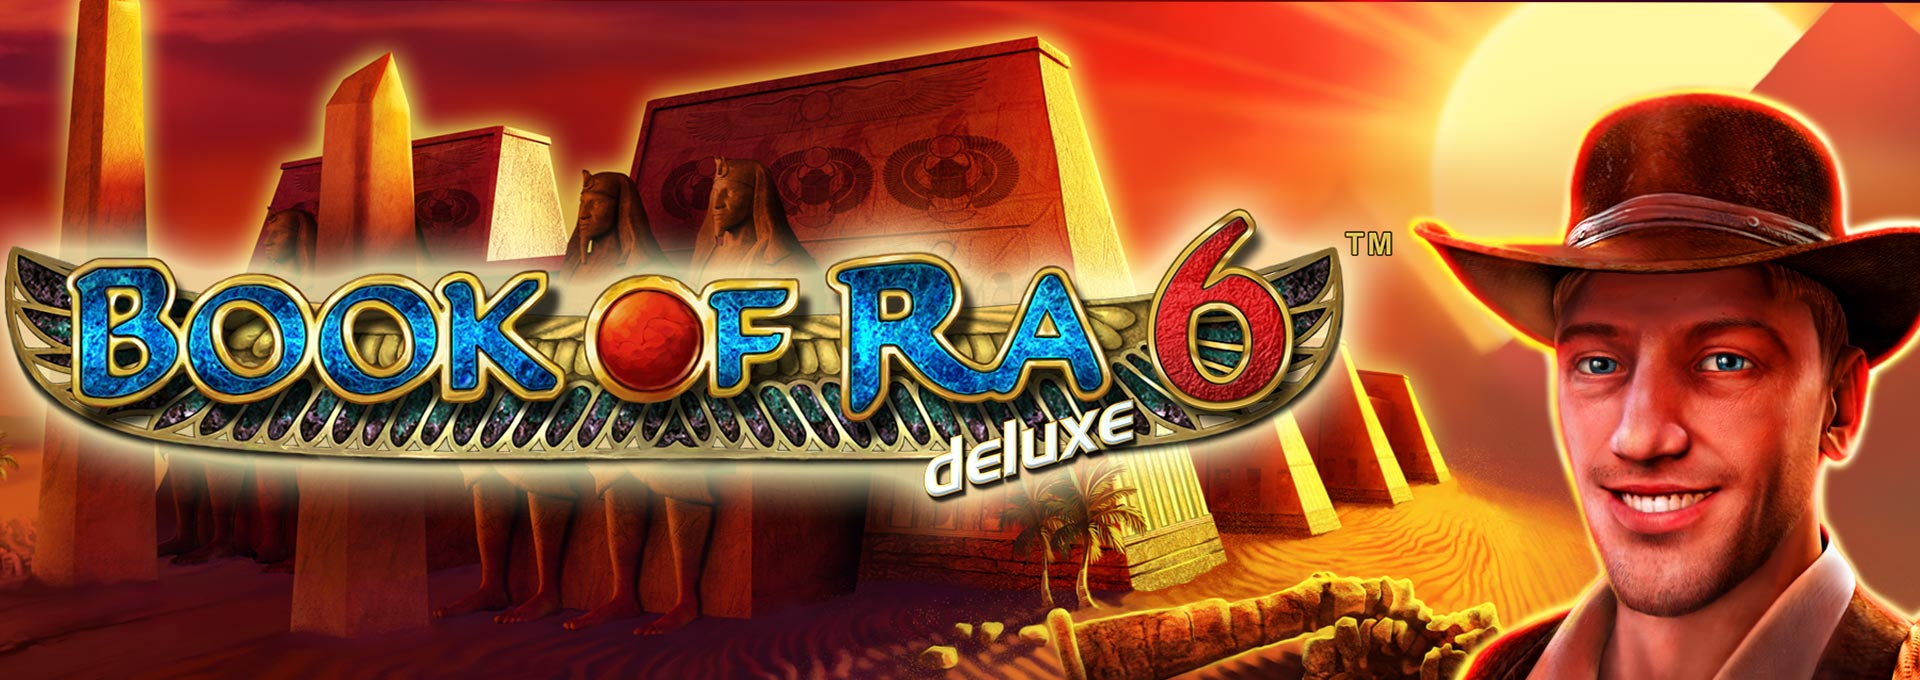 best online casino book of ra 20 cent